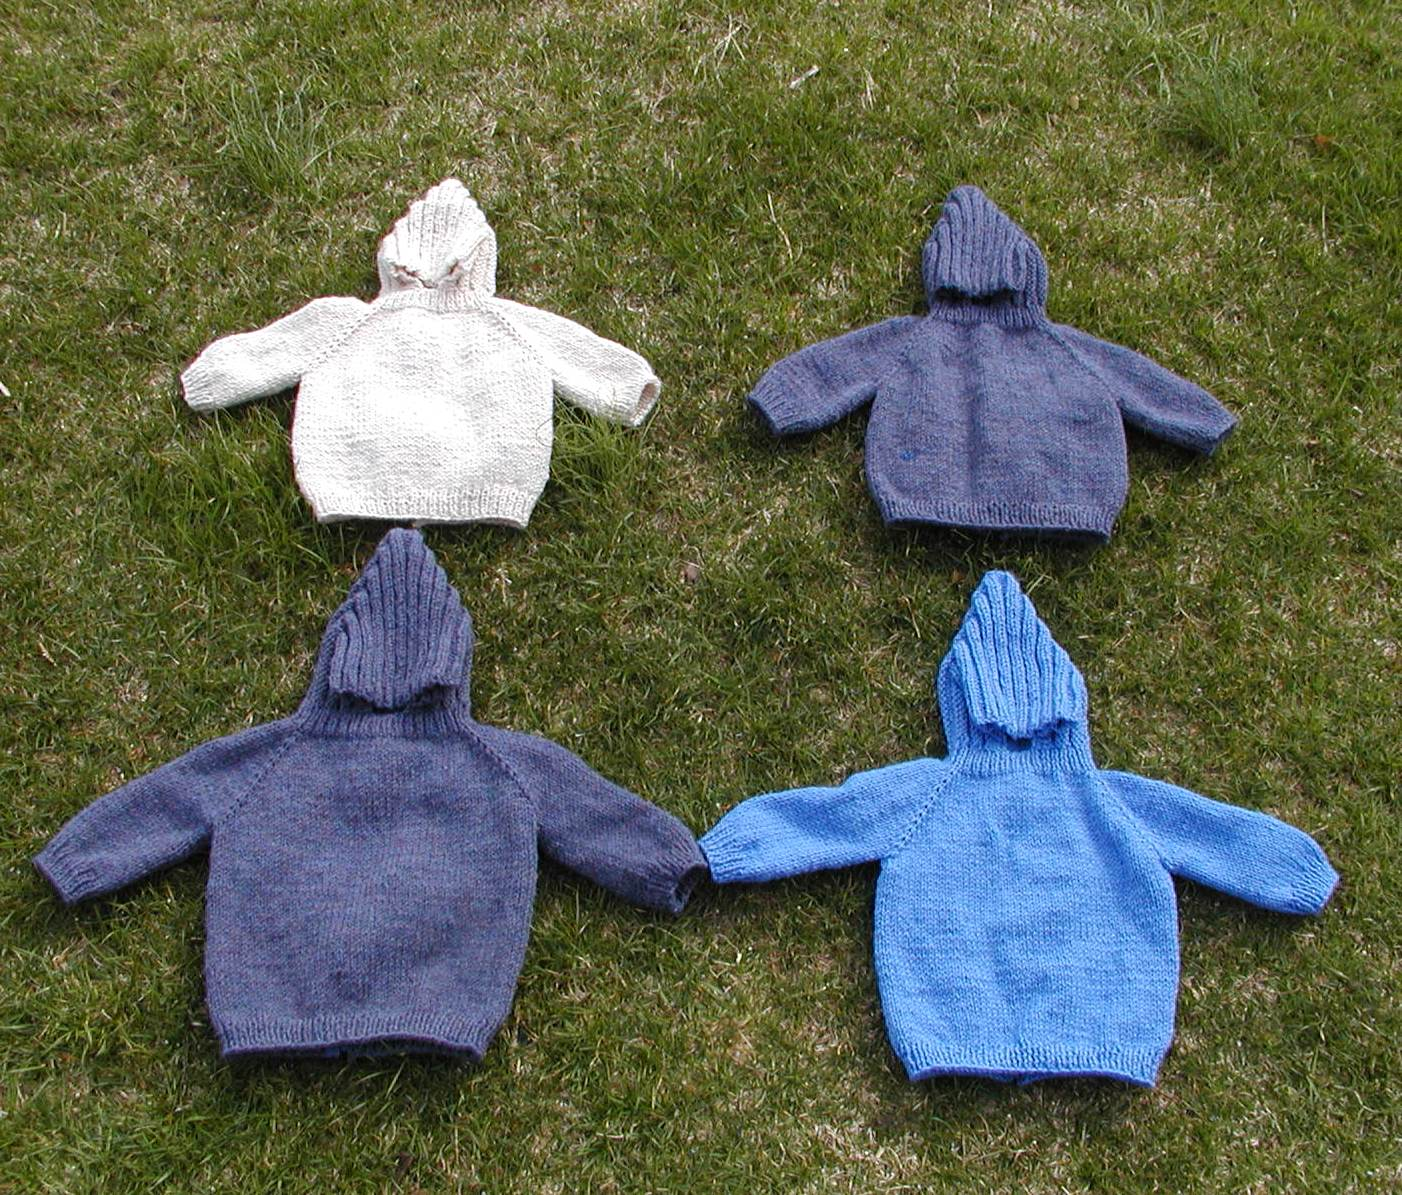 Zippered Hoodie Knitting Pattern : Sarah Montie Handknits: My favorite baby sweater